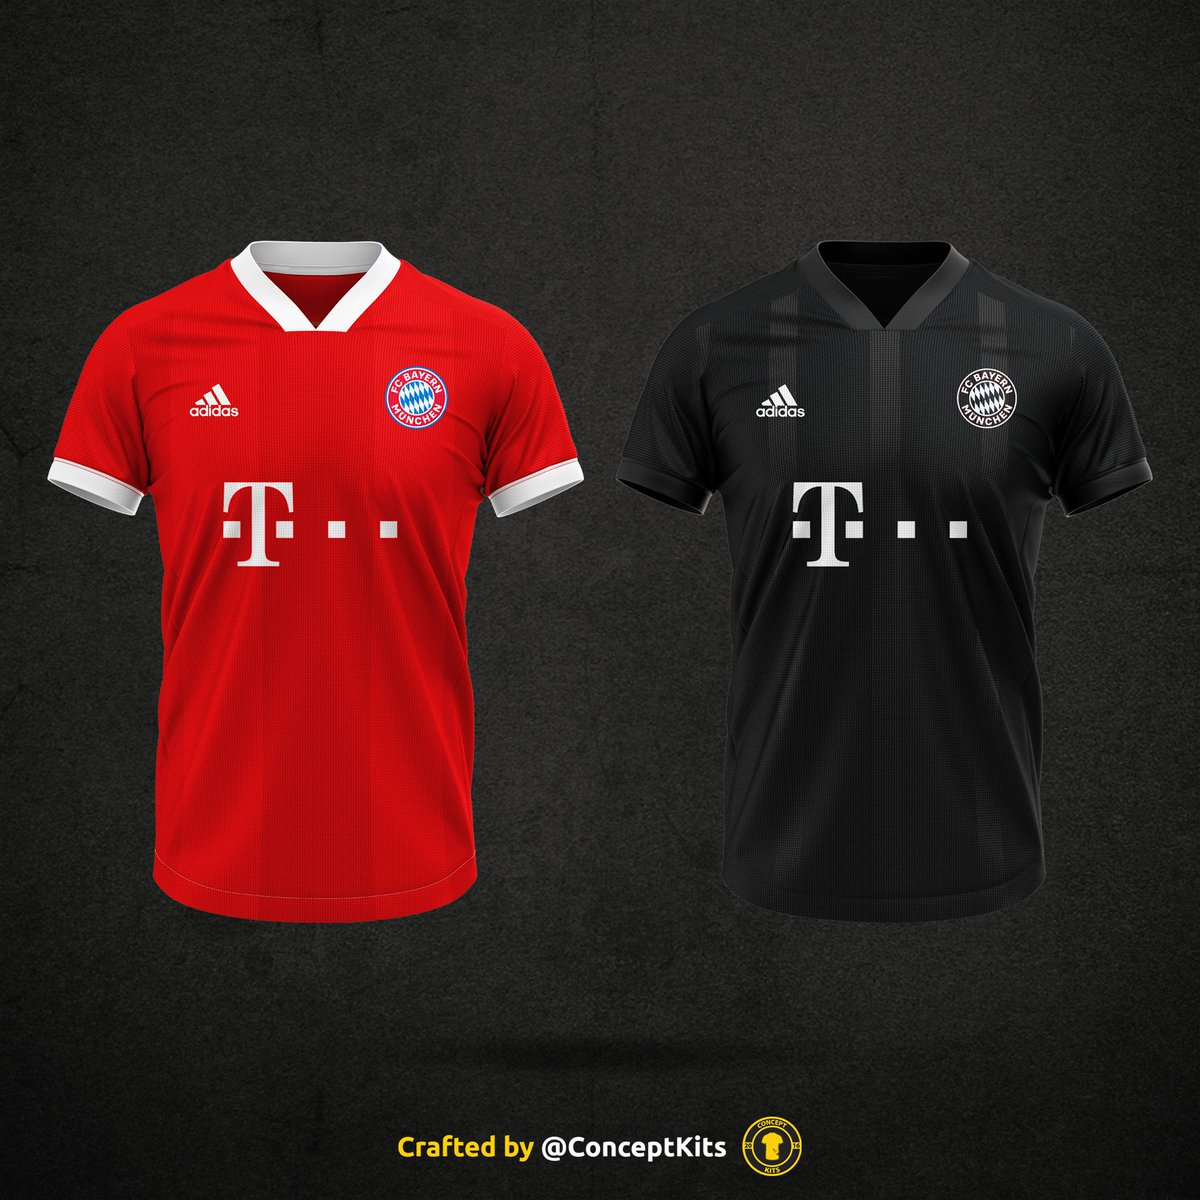 quality design 36ea8 1634c FC Bayern München home and away kit concepts for the 2020/21 ...